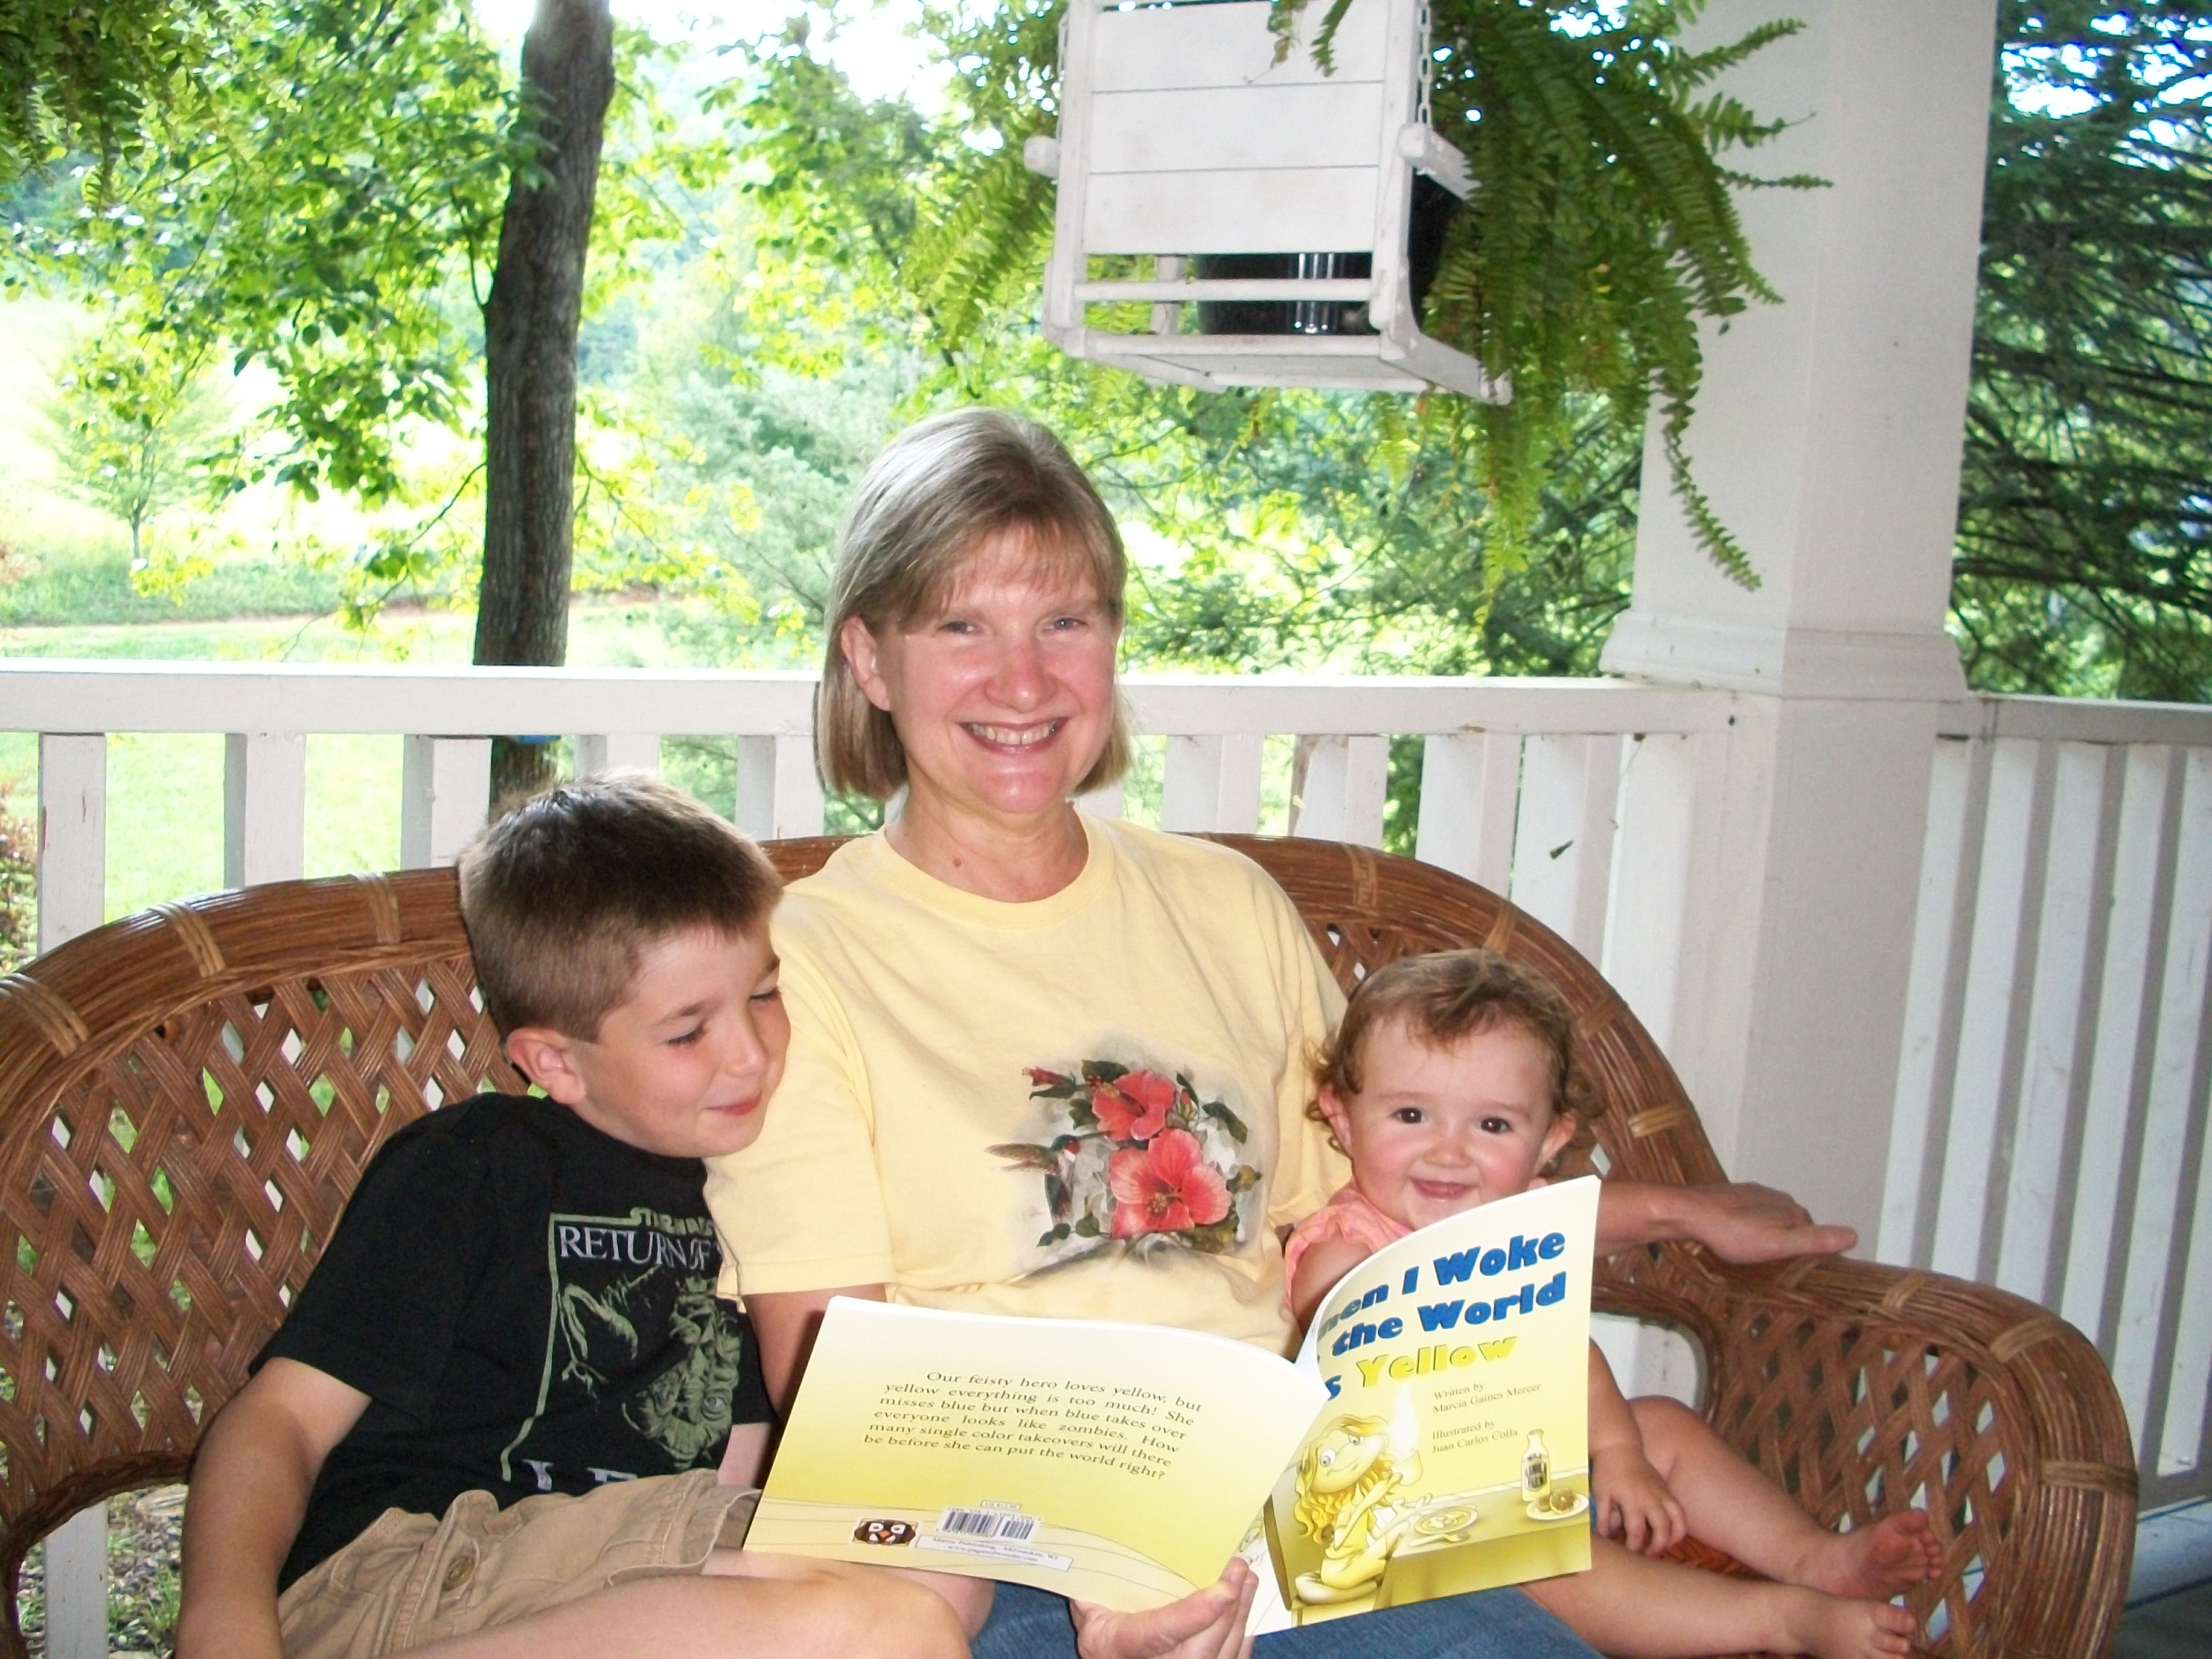 Author: Marcia Mercer with Children